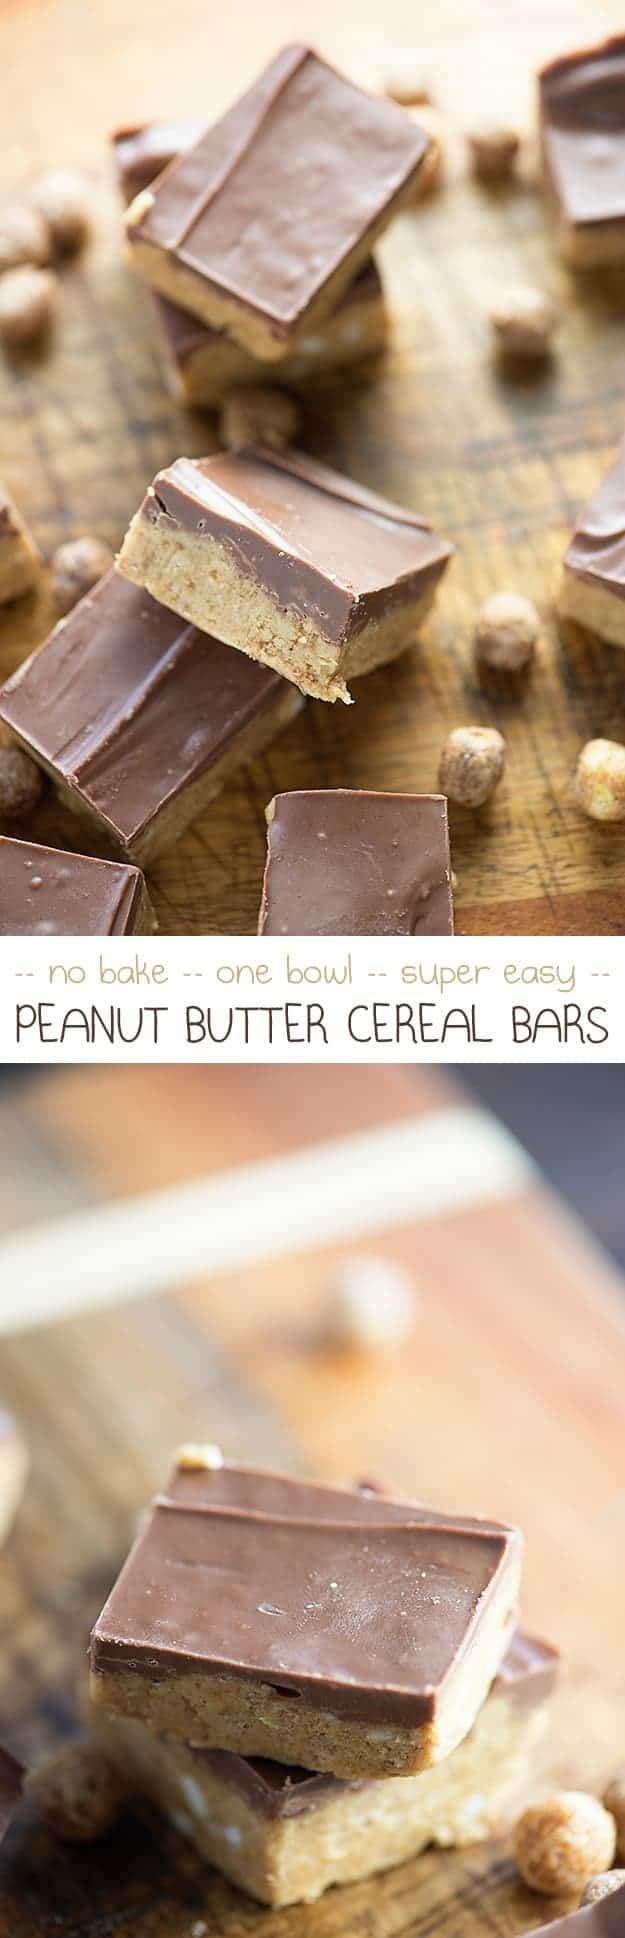 Chocolate icing on a peanut butter bar.